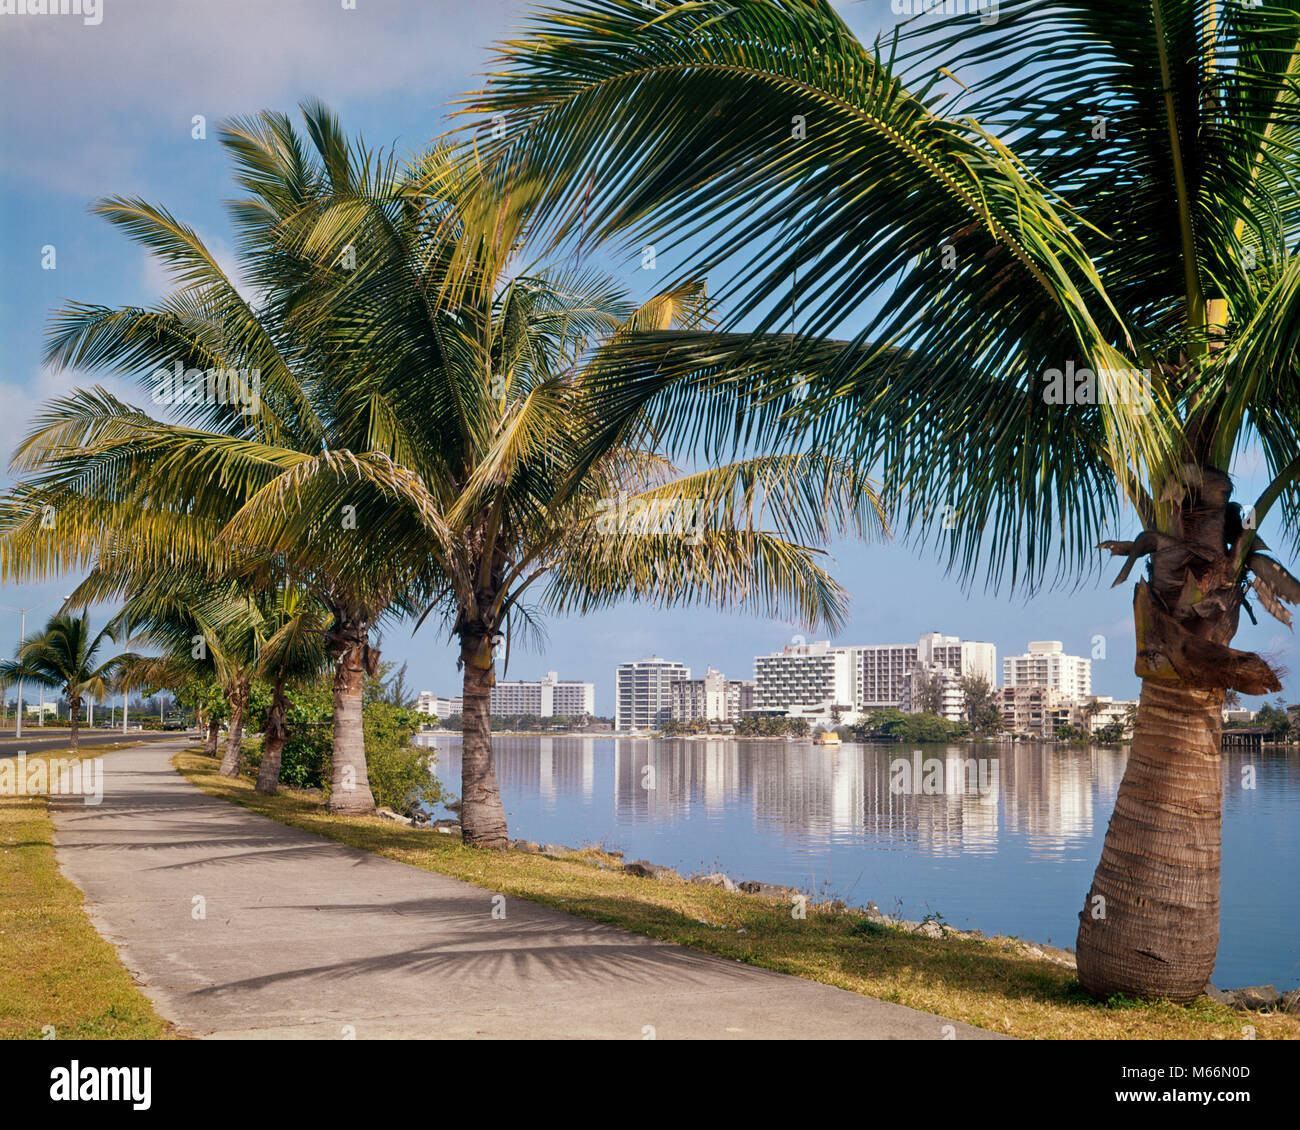 1960s VIEW OF CONDADO BEACH HOTELS FROM PALM TREE LINED ROAD SAN JUAN PUERTO RICO - kr13200 HAR001 HARS SAN JUAN - Stock Image